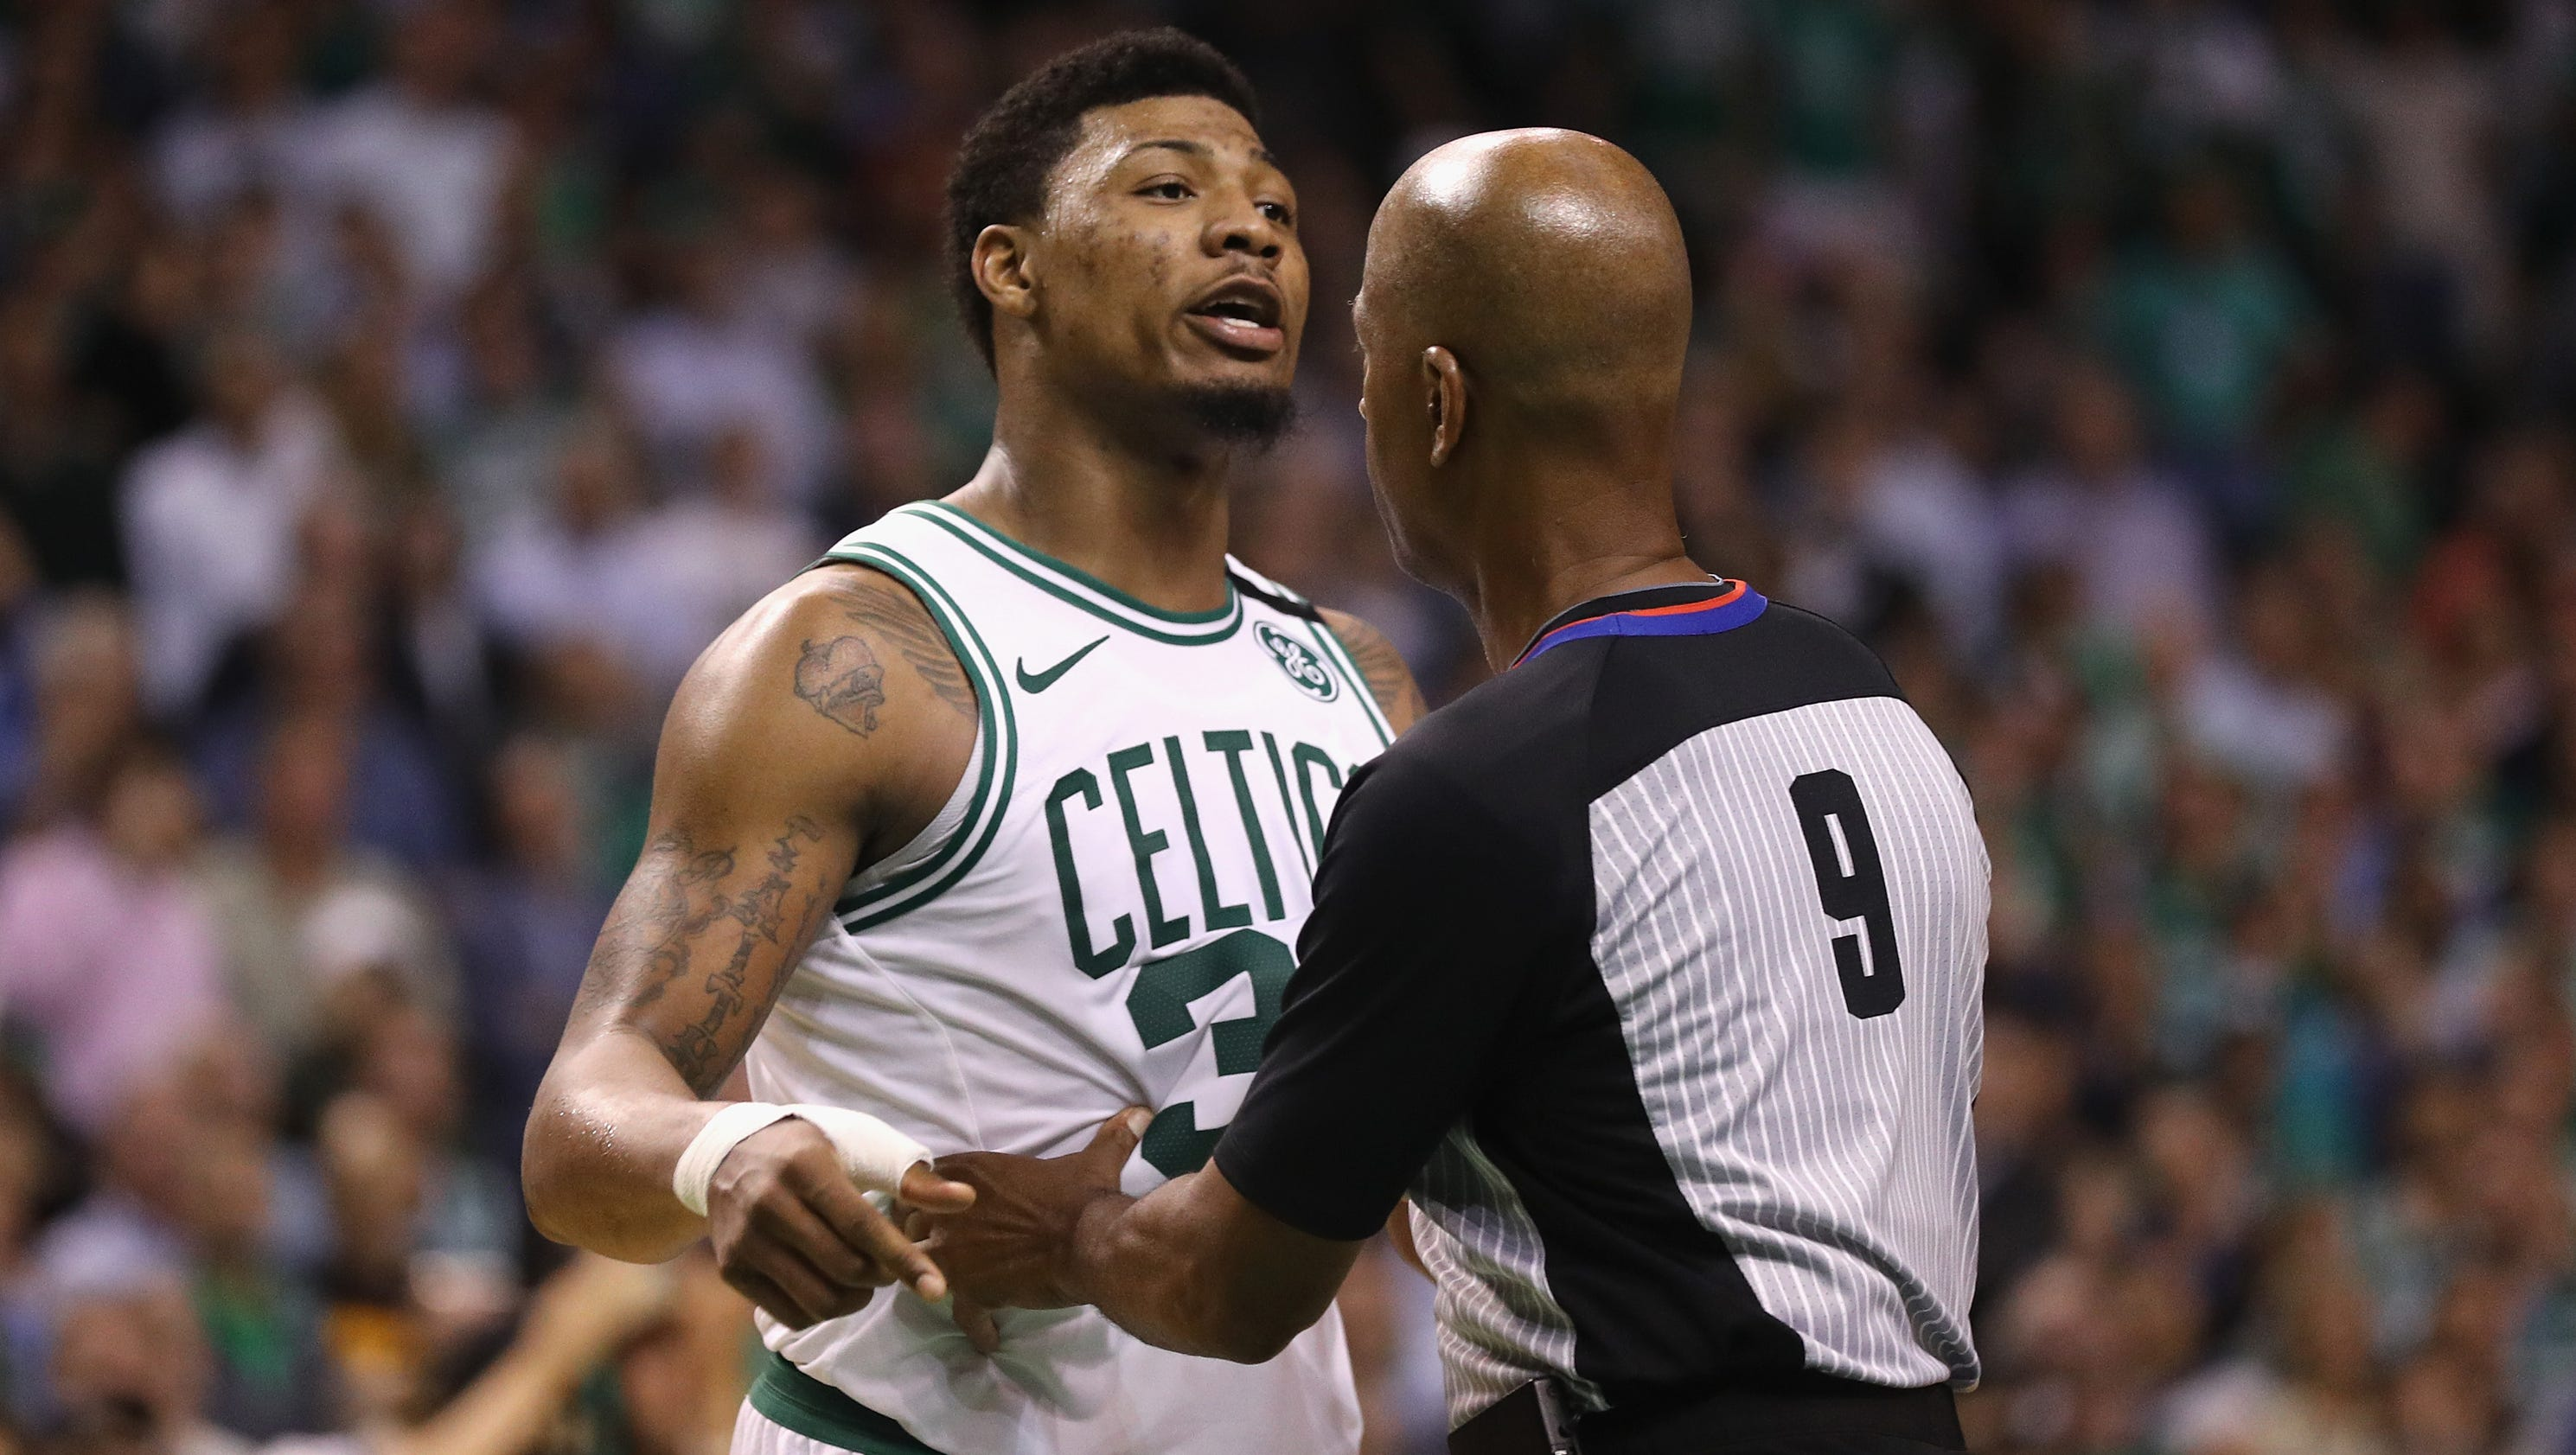 Marcus Smart calls out JR Smith: 'He's known for' dirty plays